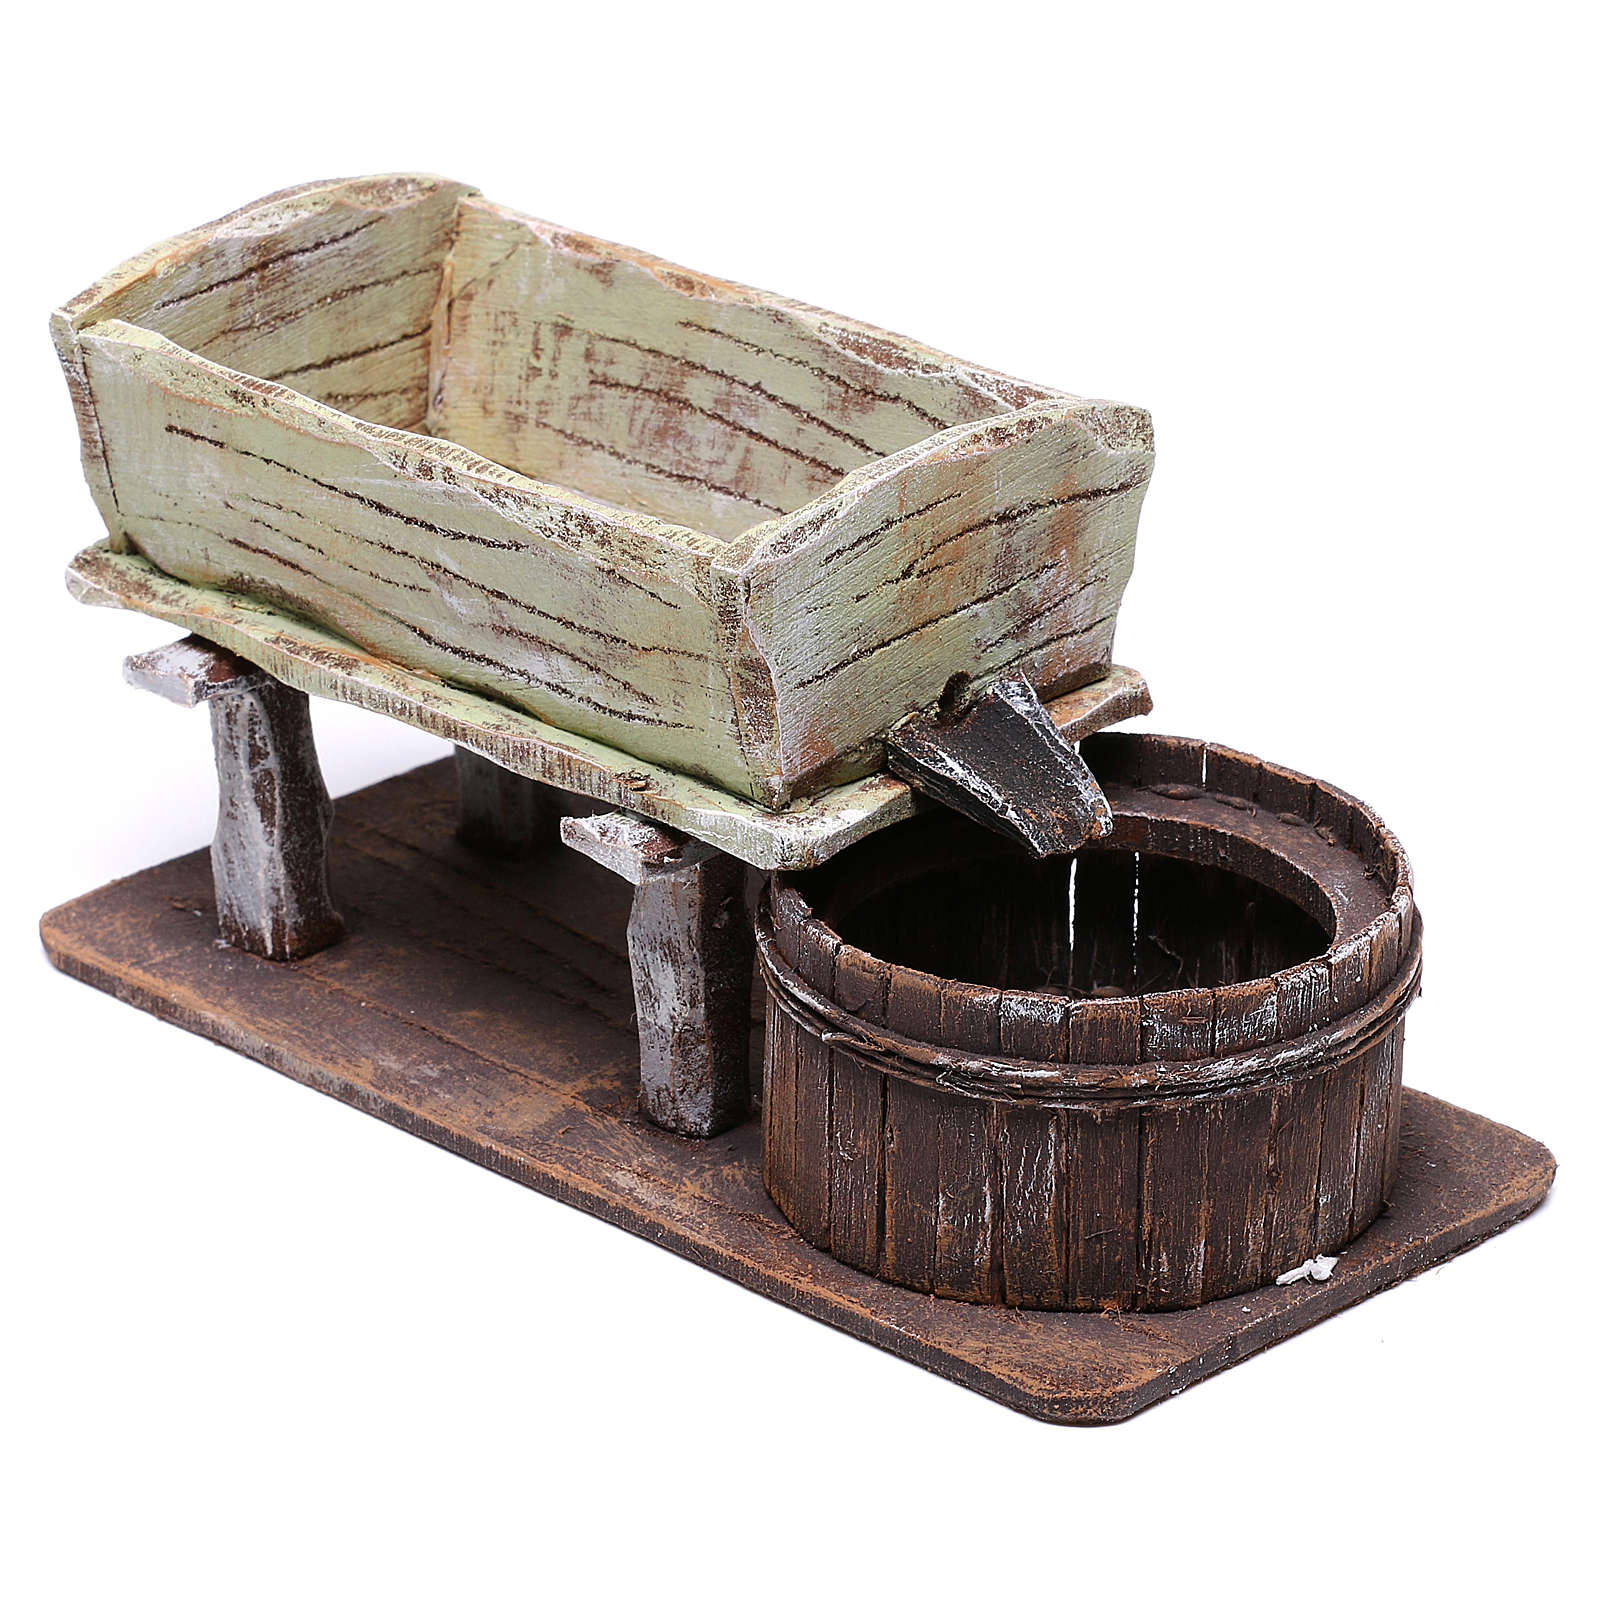 Basin for crushing grapes 20x15x5 cm for Nativity scene of 10 cm 4